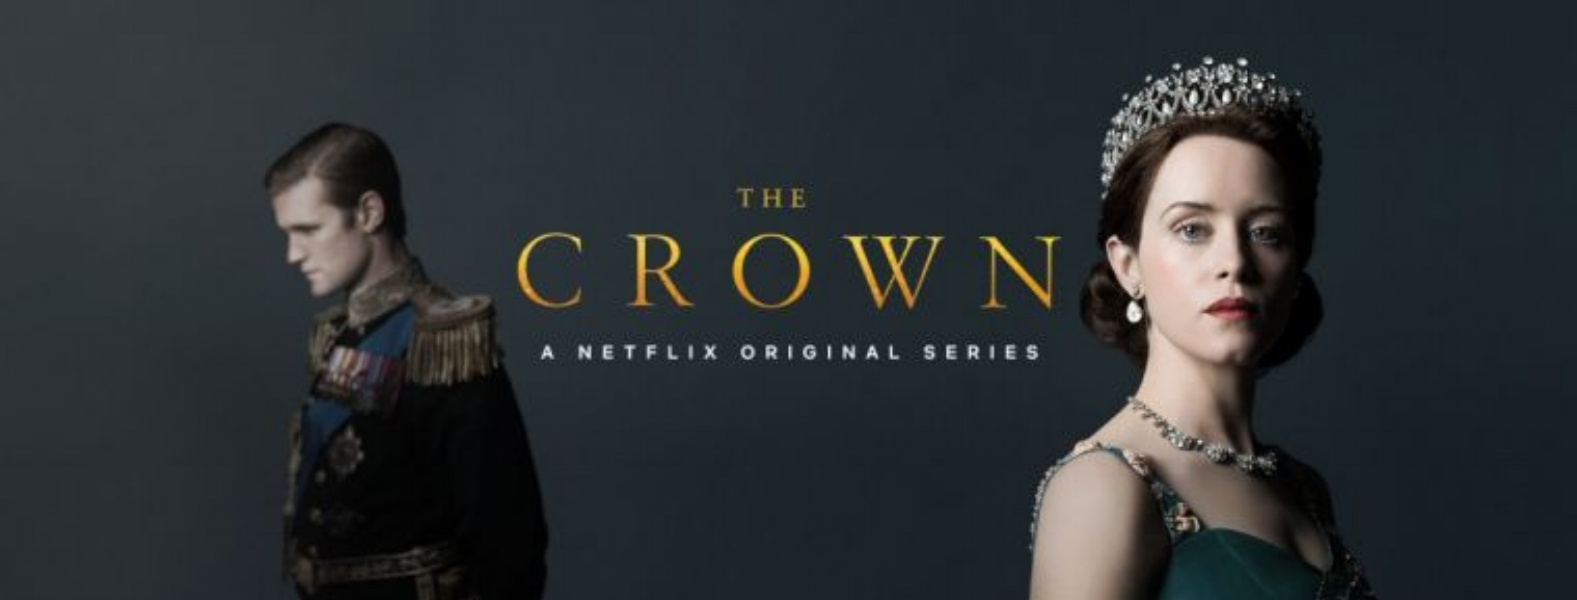 the-crown-netflix-original-series_orig.jpg